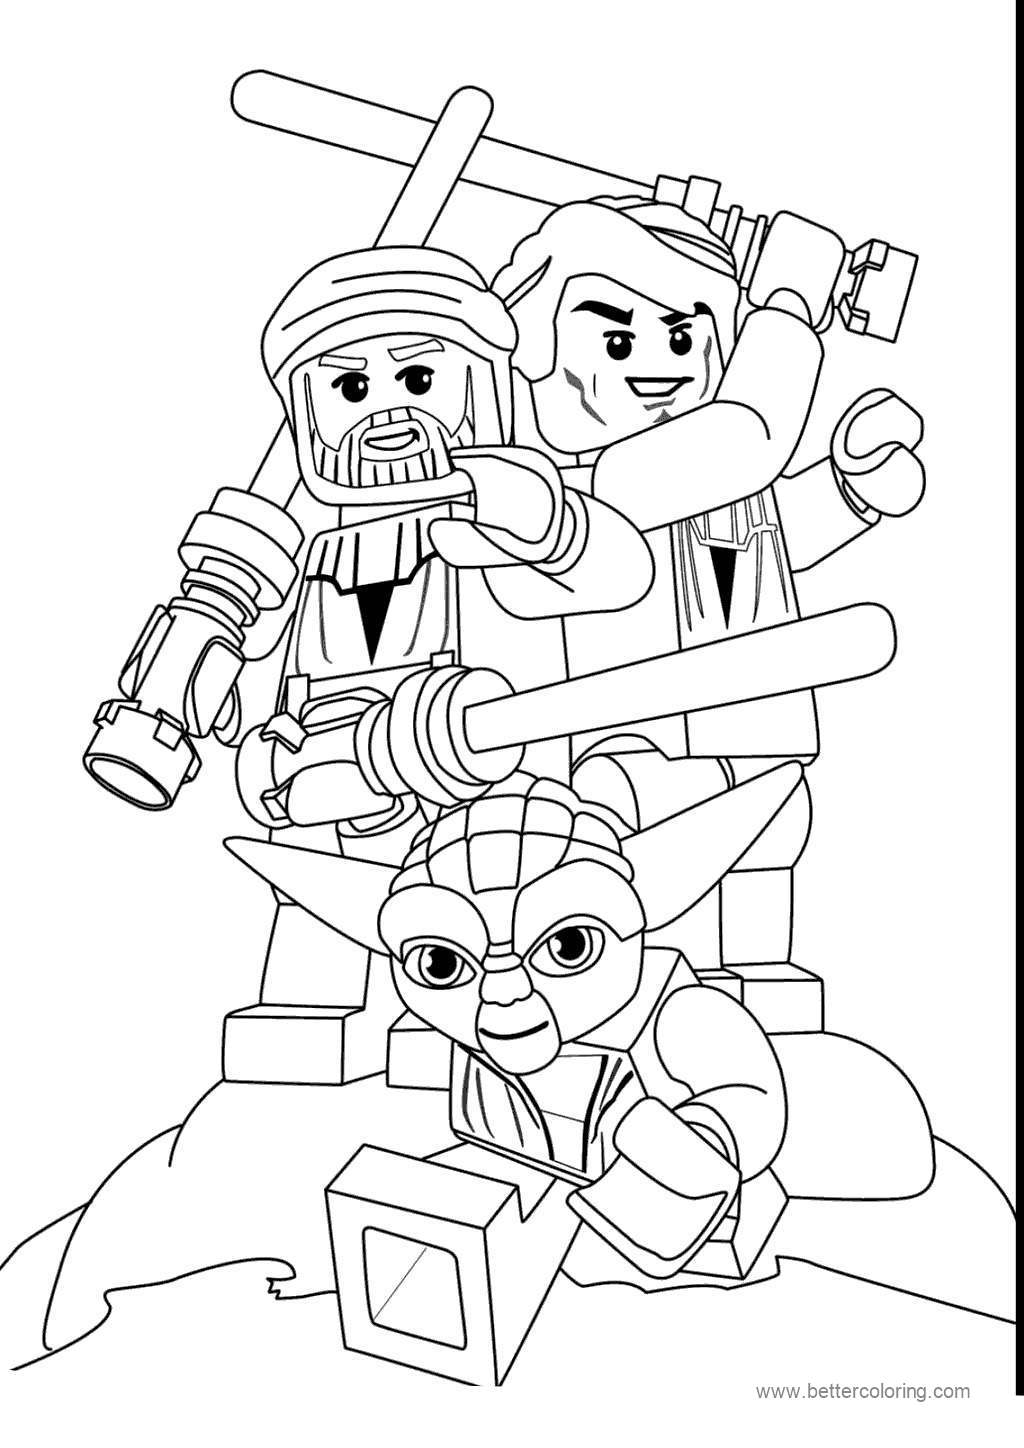 lego coloring pages to print free lego flash coloring pages free printable lego flash pages lego coloring print free to